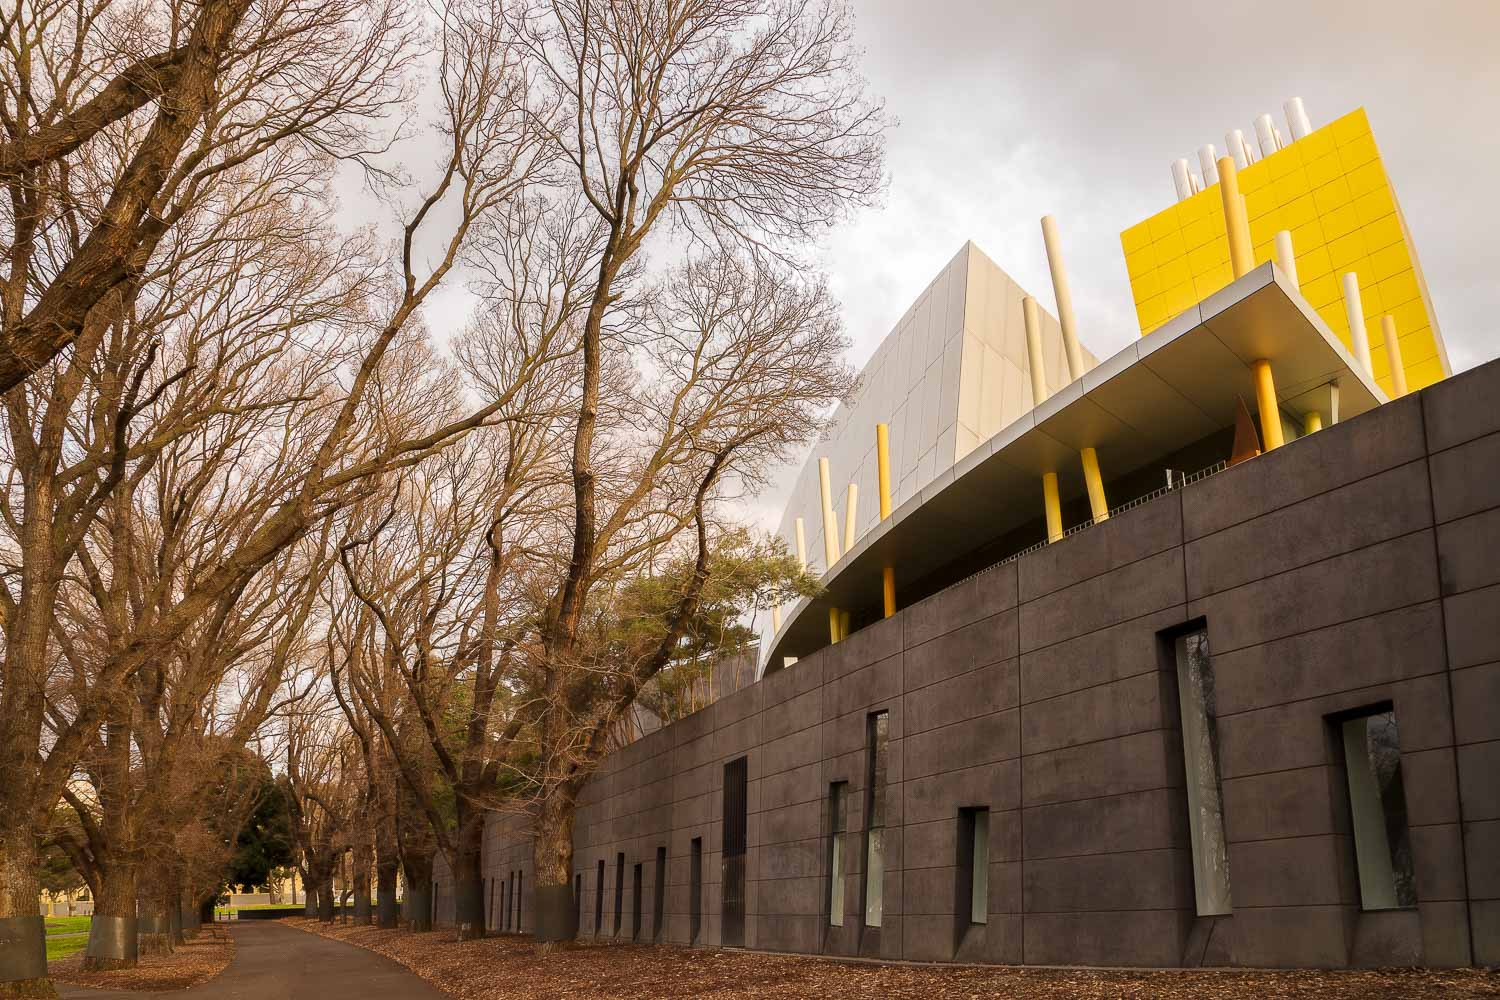 A lovely, tree-lined path adjacent to the    Melbourne Museum    under late afternnon winter's light. Image made with the    Sony a7R II camera    and    Sony/Zeiss 24-70mm f4 lens   .